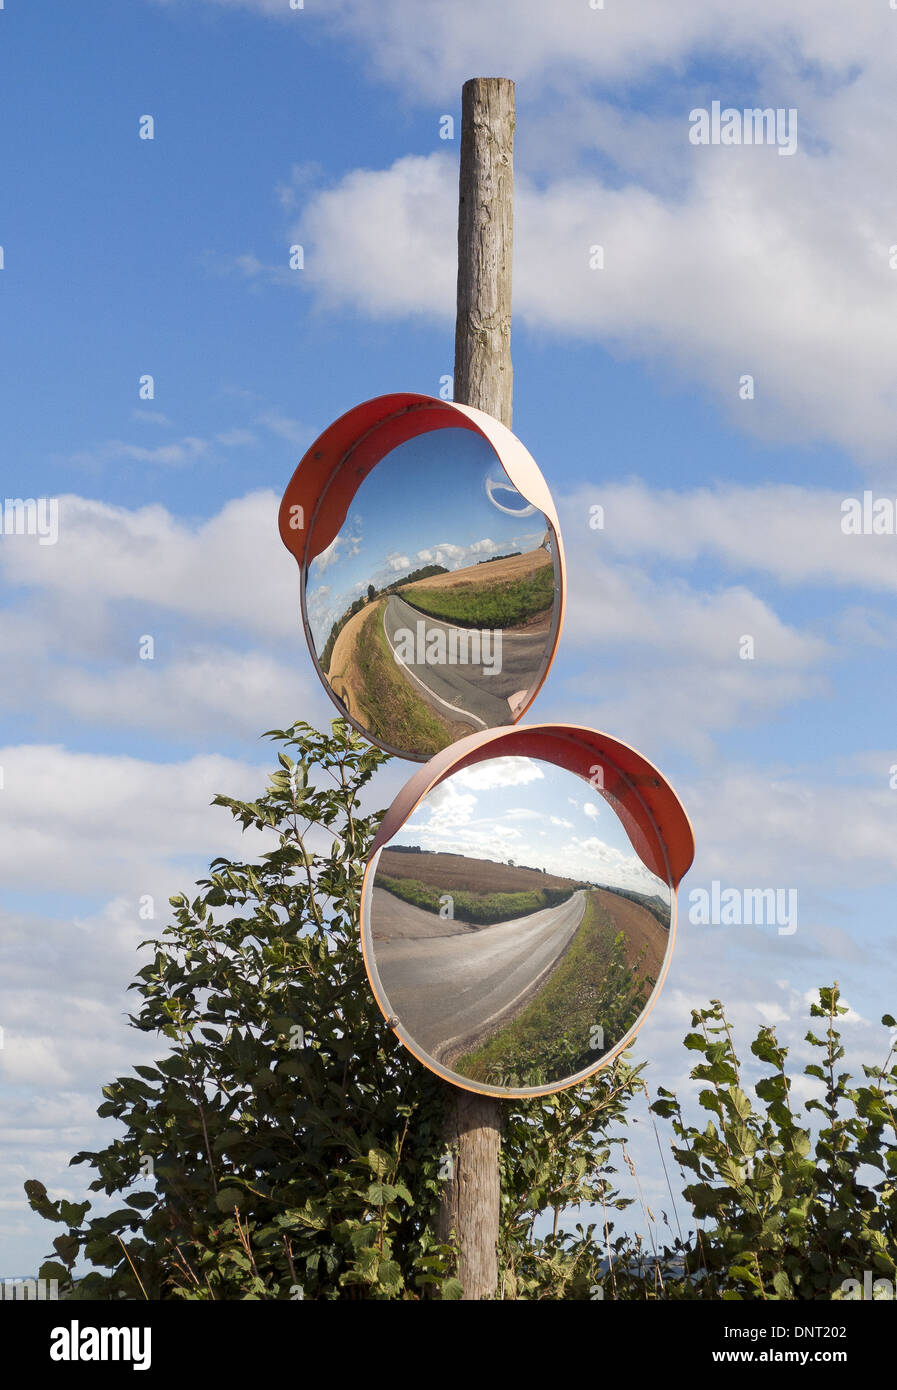 Two convex road safety mirrors on wooden post on a concealed entrance on a straight country road - Stock Image